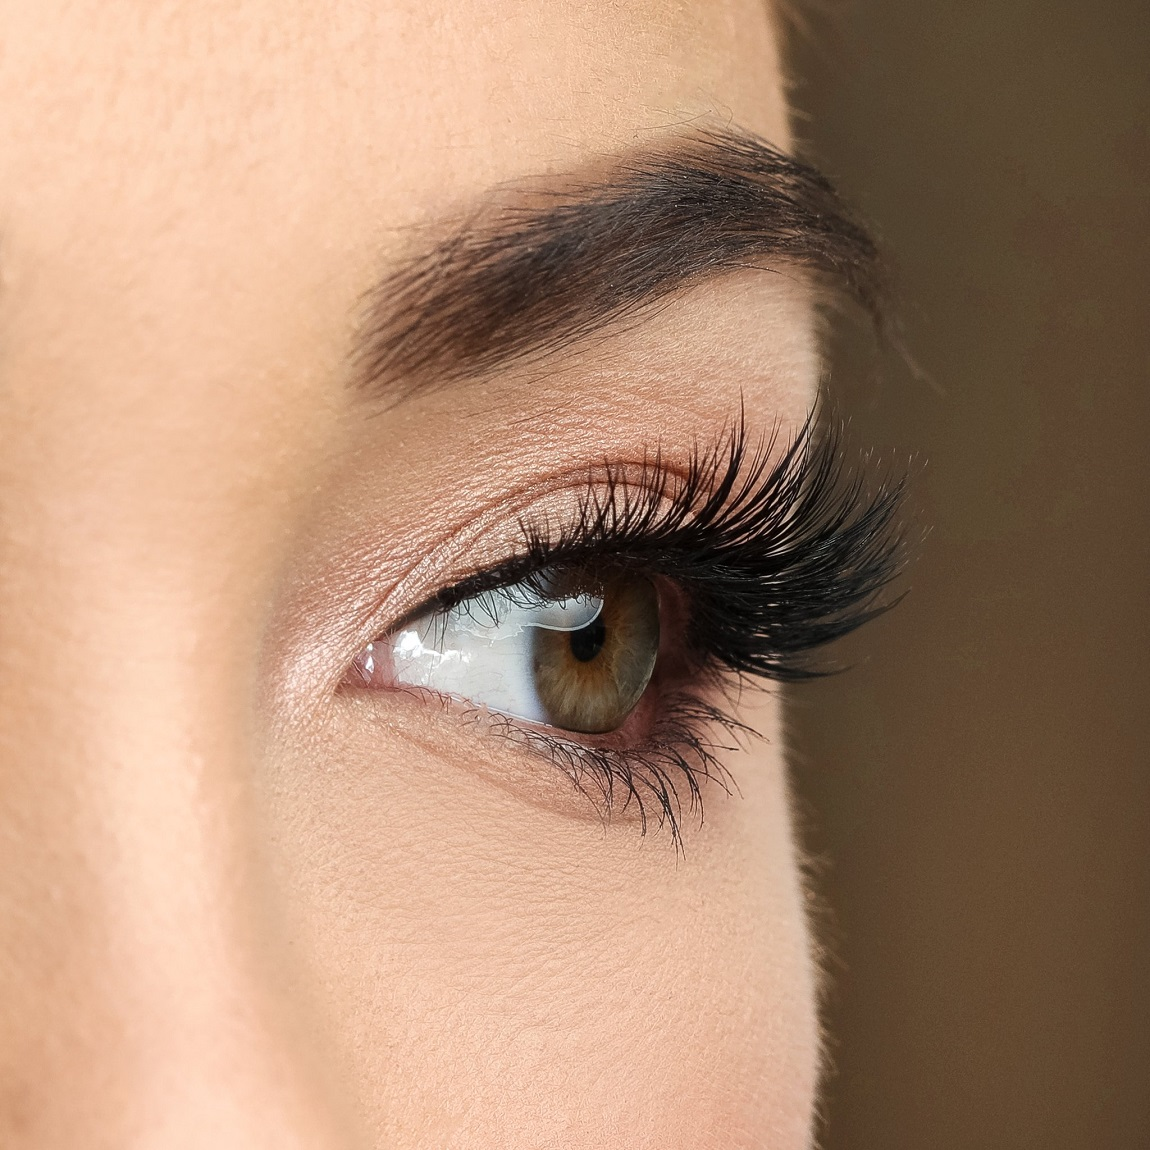 Does castor oil make your eyelashes grow or not?